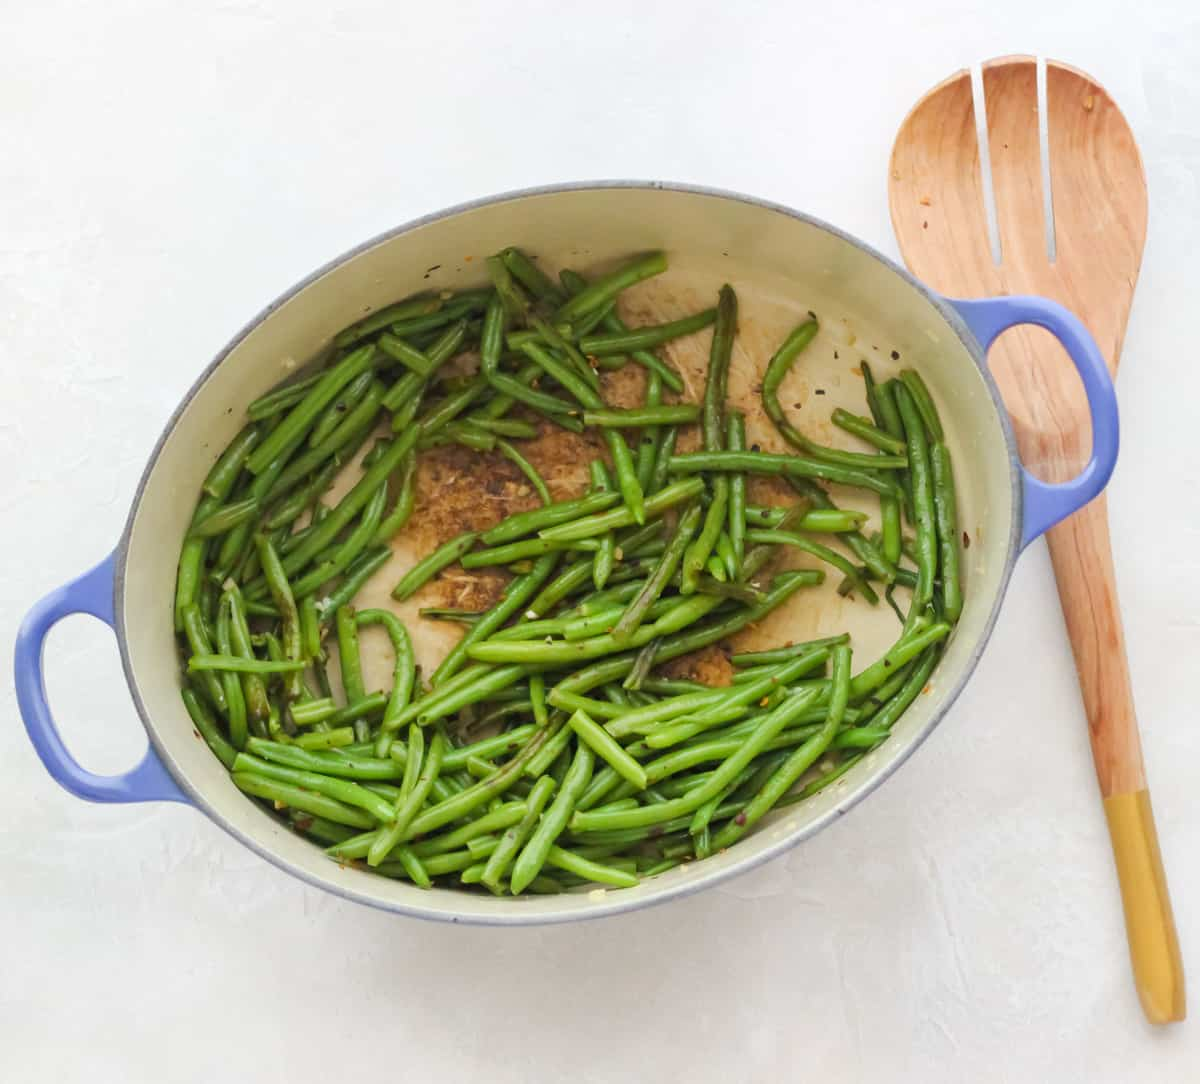 white counter with blue pot of sauteed green beans, wooden spoon resting on counter next to pot